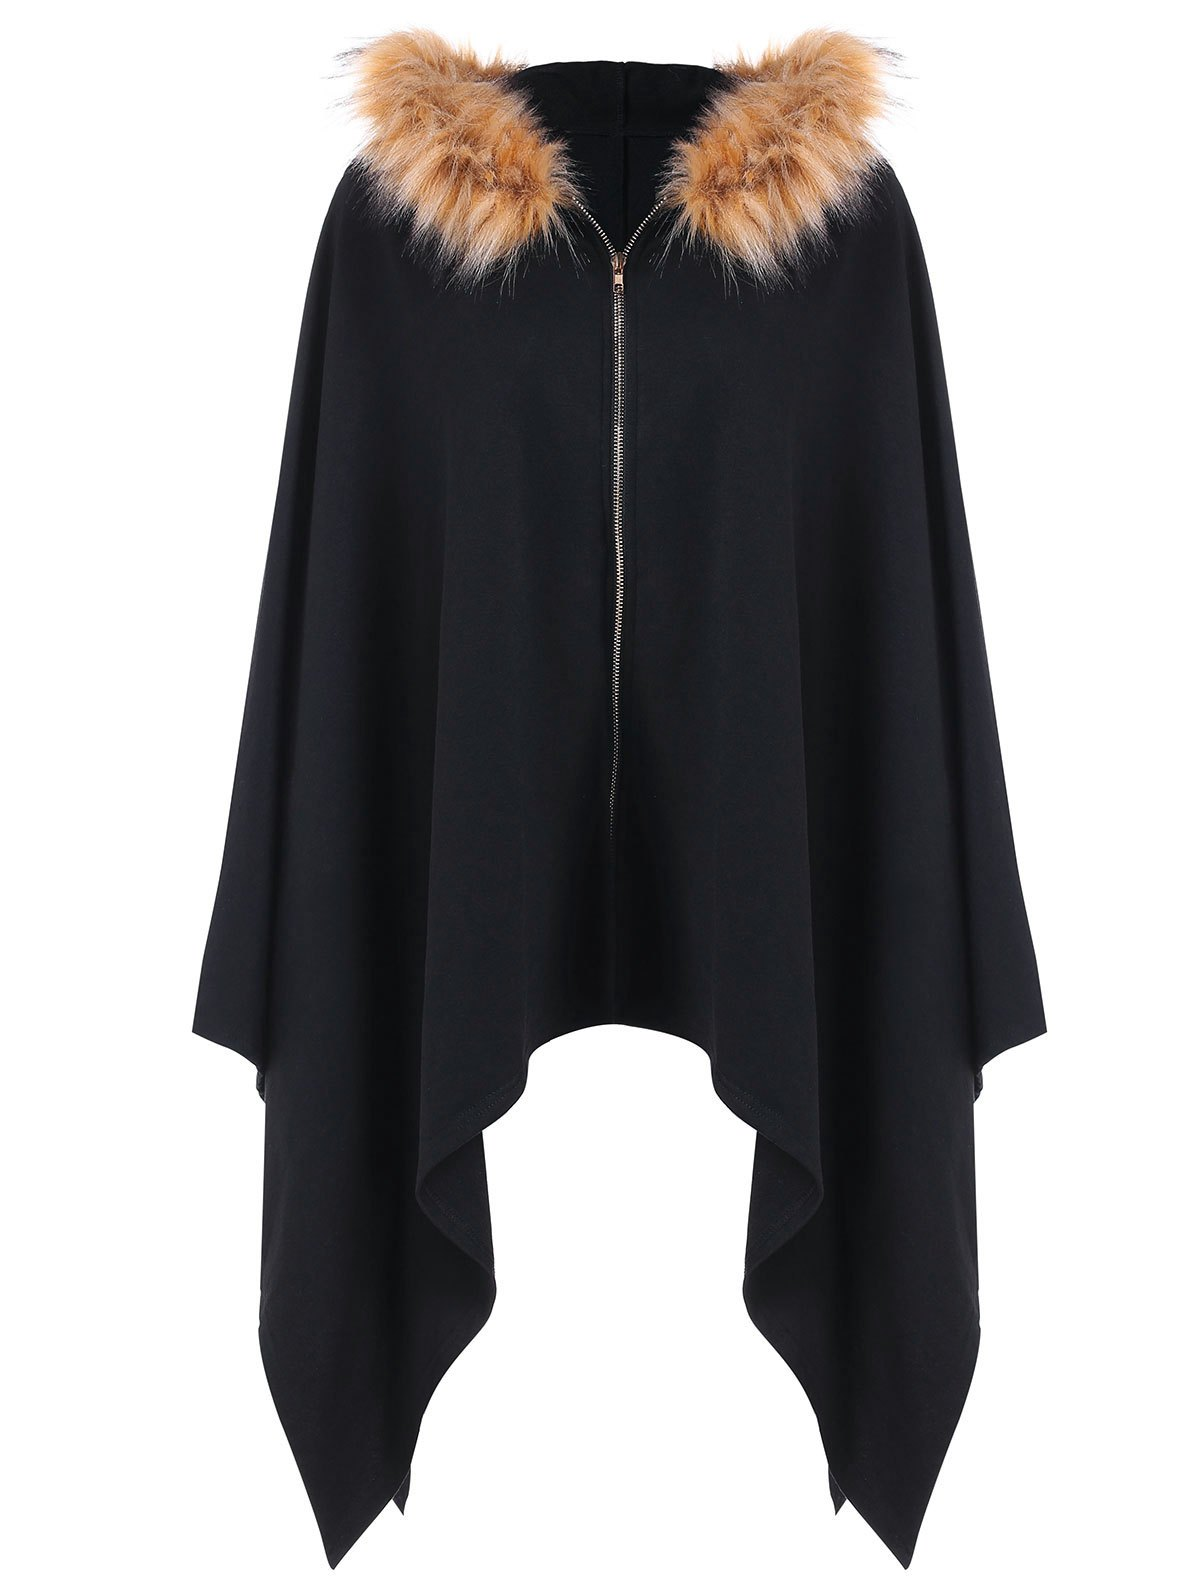 Hot Asymmetric Fluffy Hooded Cape